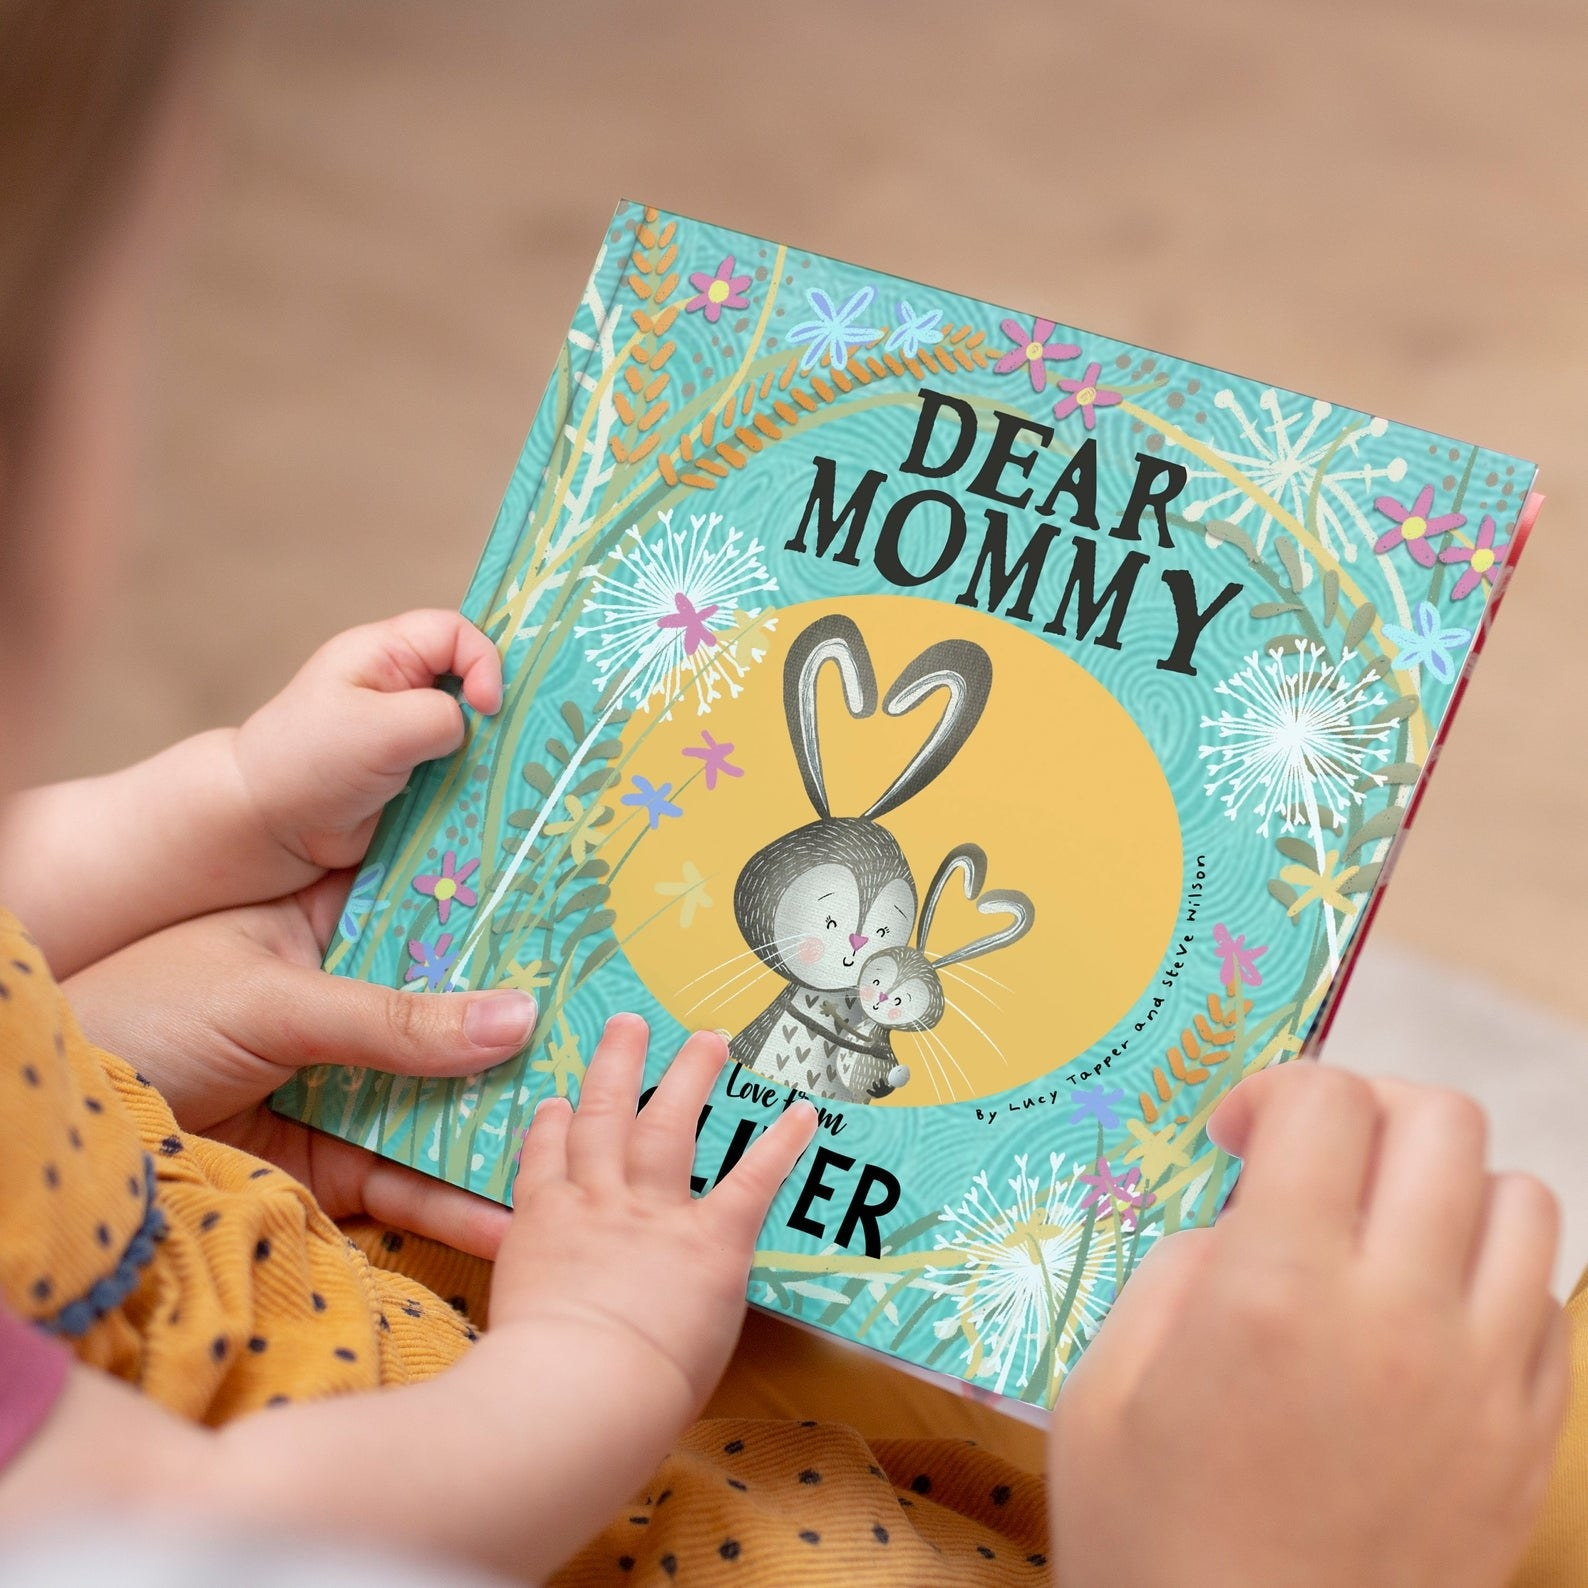 the dear mommy personalized story book